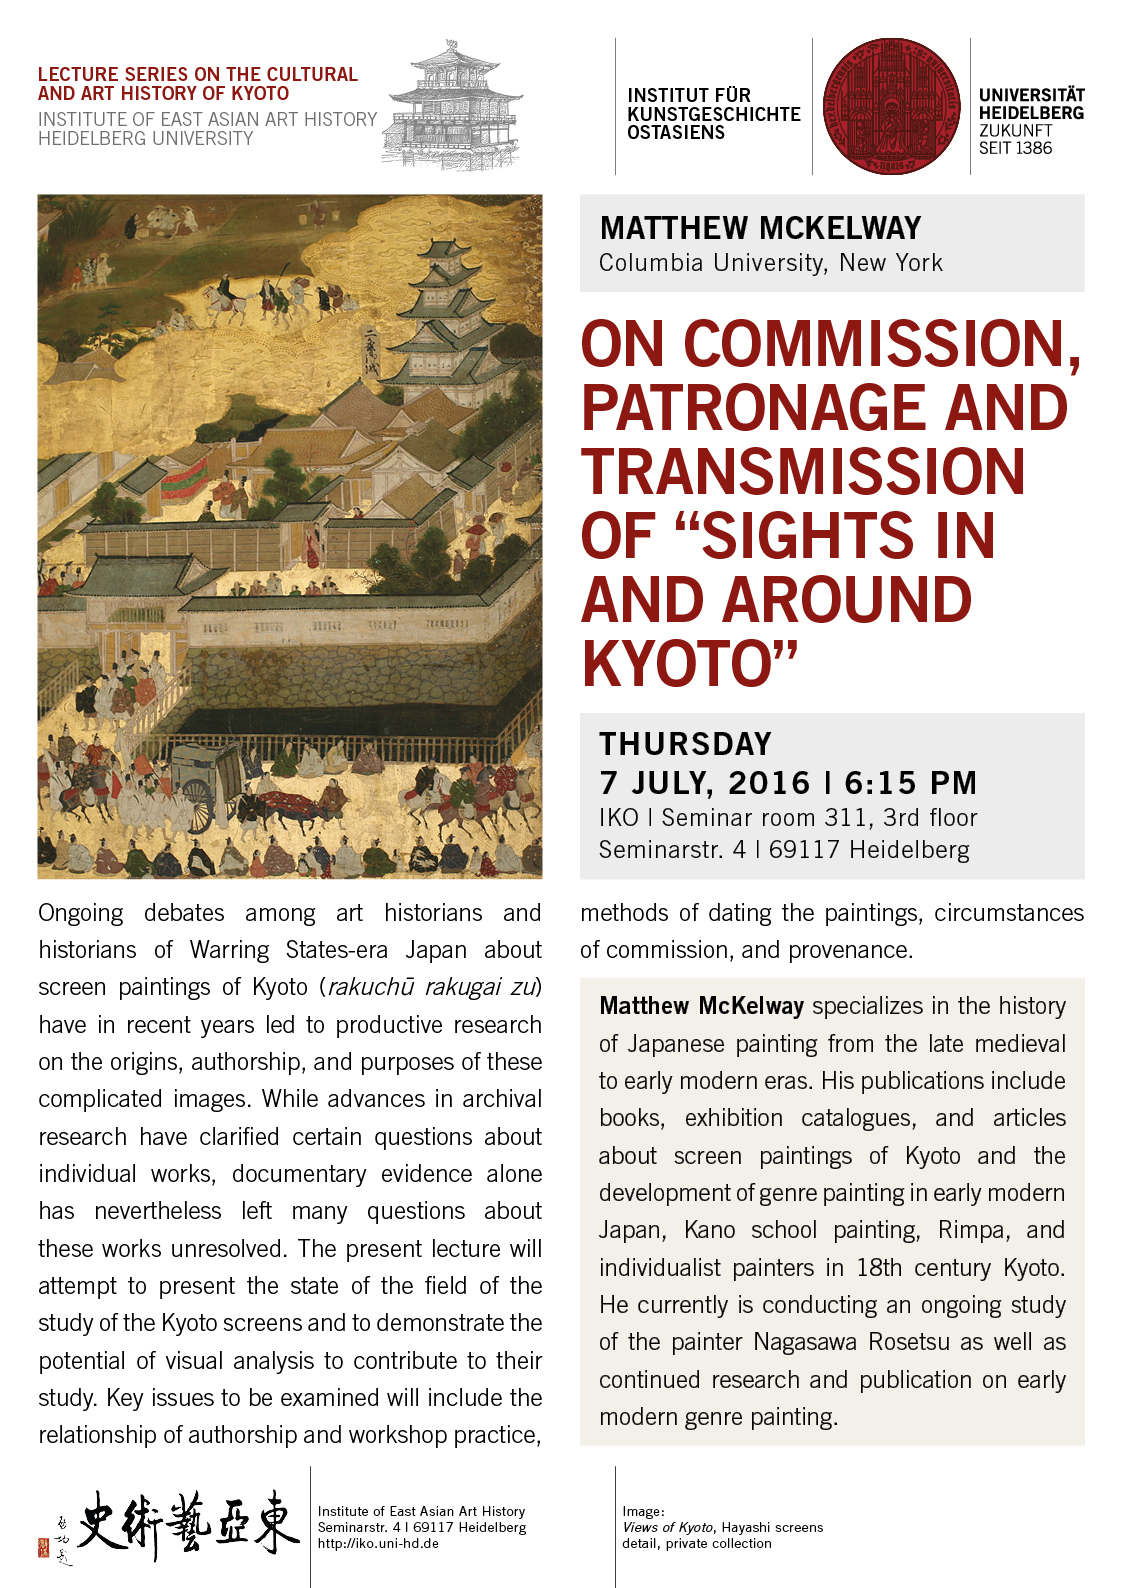 7 July, 2016 | Matthew McKelway: On Commission, Patronage and Transmission of 'Sights in and around Kyoto'